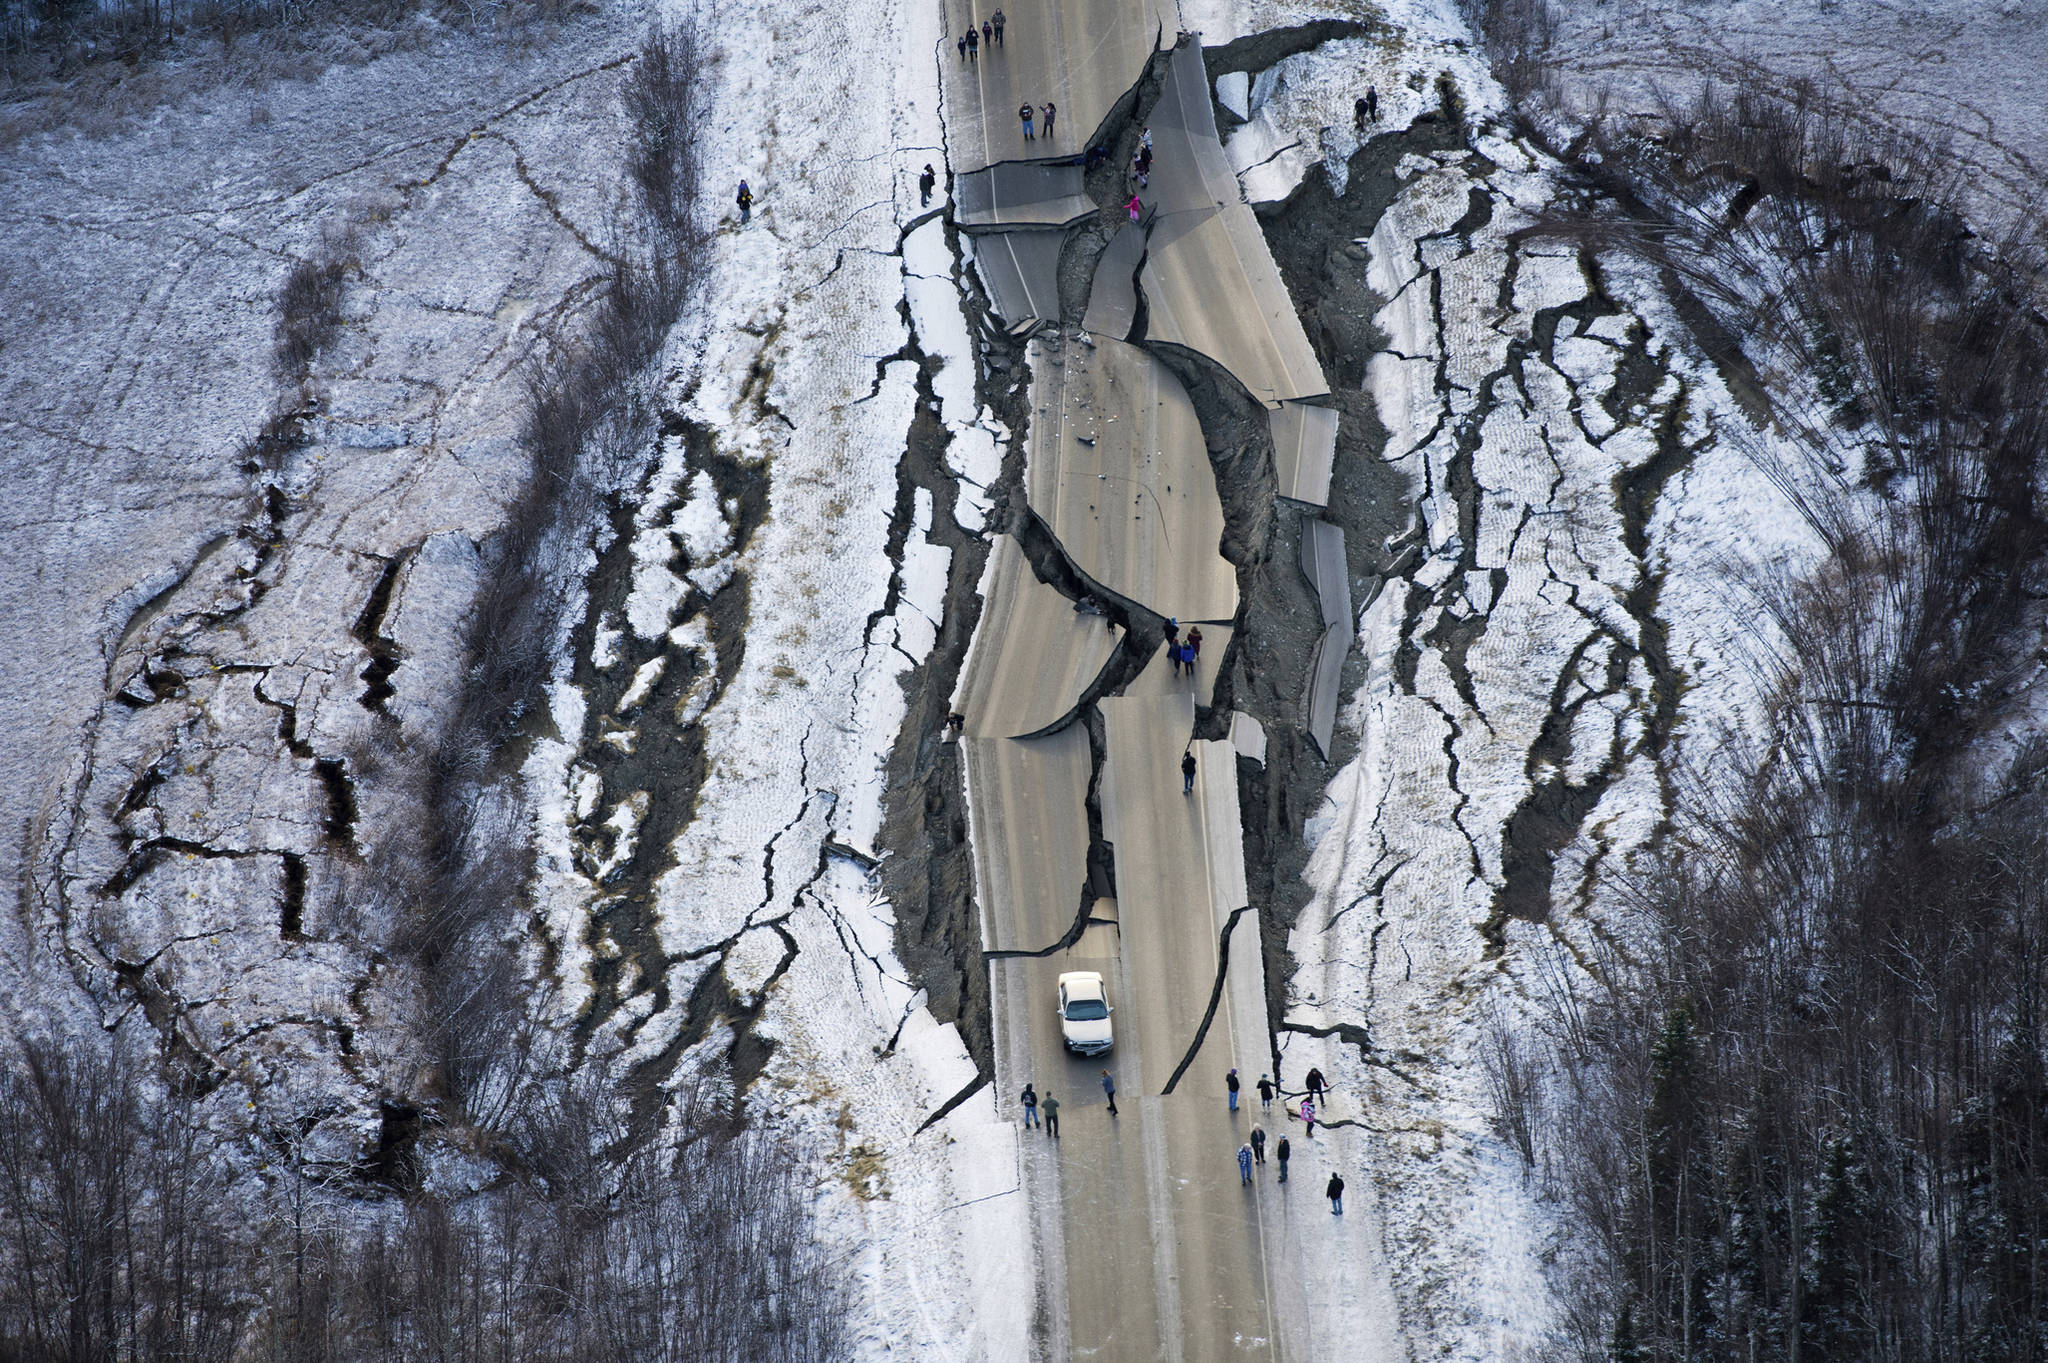 This aerial photo shows damage on Vine Road, south of Wasilla, Alaska, after earthquakes Friday, Nov. 30, 2018. Back-to-back earthquakes measuring 7.0 and 5.7 shattered highways and rocked buildings Friday in Anchorage and the surrounding area, sending people running into the streets and briefly triggering a tsunami warning for islands and coastal areas south of the city. (Marc Lester/Anchorage Daily News via AP)                                 This aerial photo shows damage on Vine Road, south of Wasilla, Alaska, after earthquakes Friday, Nov. 30, 2018. Back-to-back earthquakes measuring 7.0 and 5.7 shattered highways and rocked buildings Friday in Anchorage and the surrounding area, sending people running into the streets and briefly triggering a tsunami warning for islands and coastal areas south of the city. (Marc Lester/Anchorage Daily News via AP)